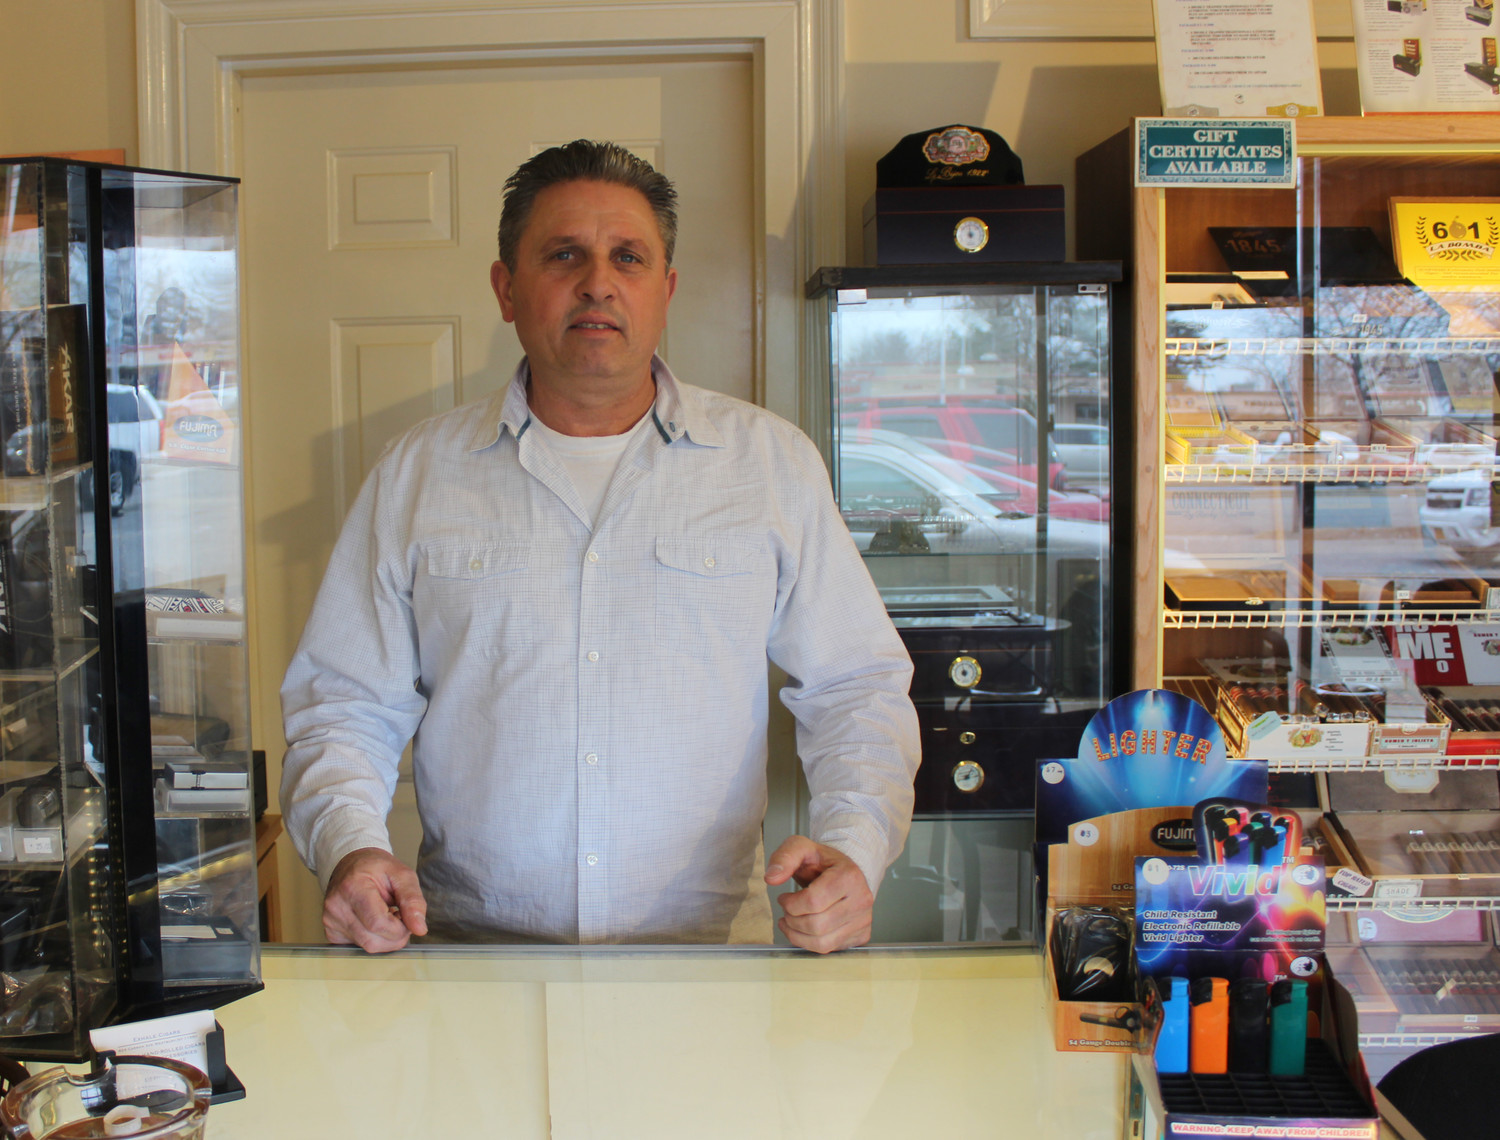 Carmine Crispino, 54, of Merrick, is known locally for his 16-year involvement at Kev's Landscaping and Tress Business in Westbury. Roughly three months ago, he became the co-owner of Exhale Cigars on Carman Avenue.